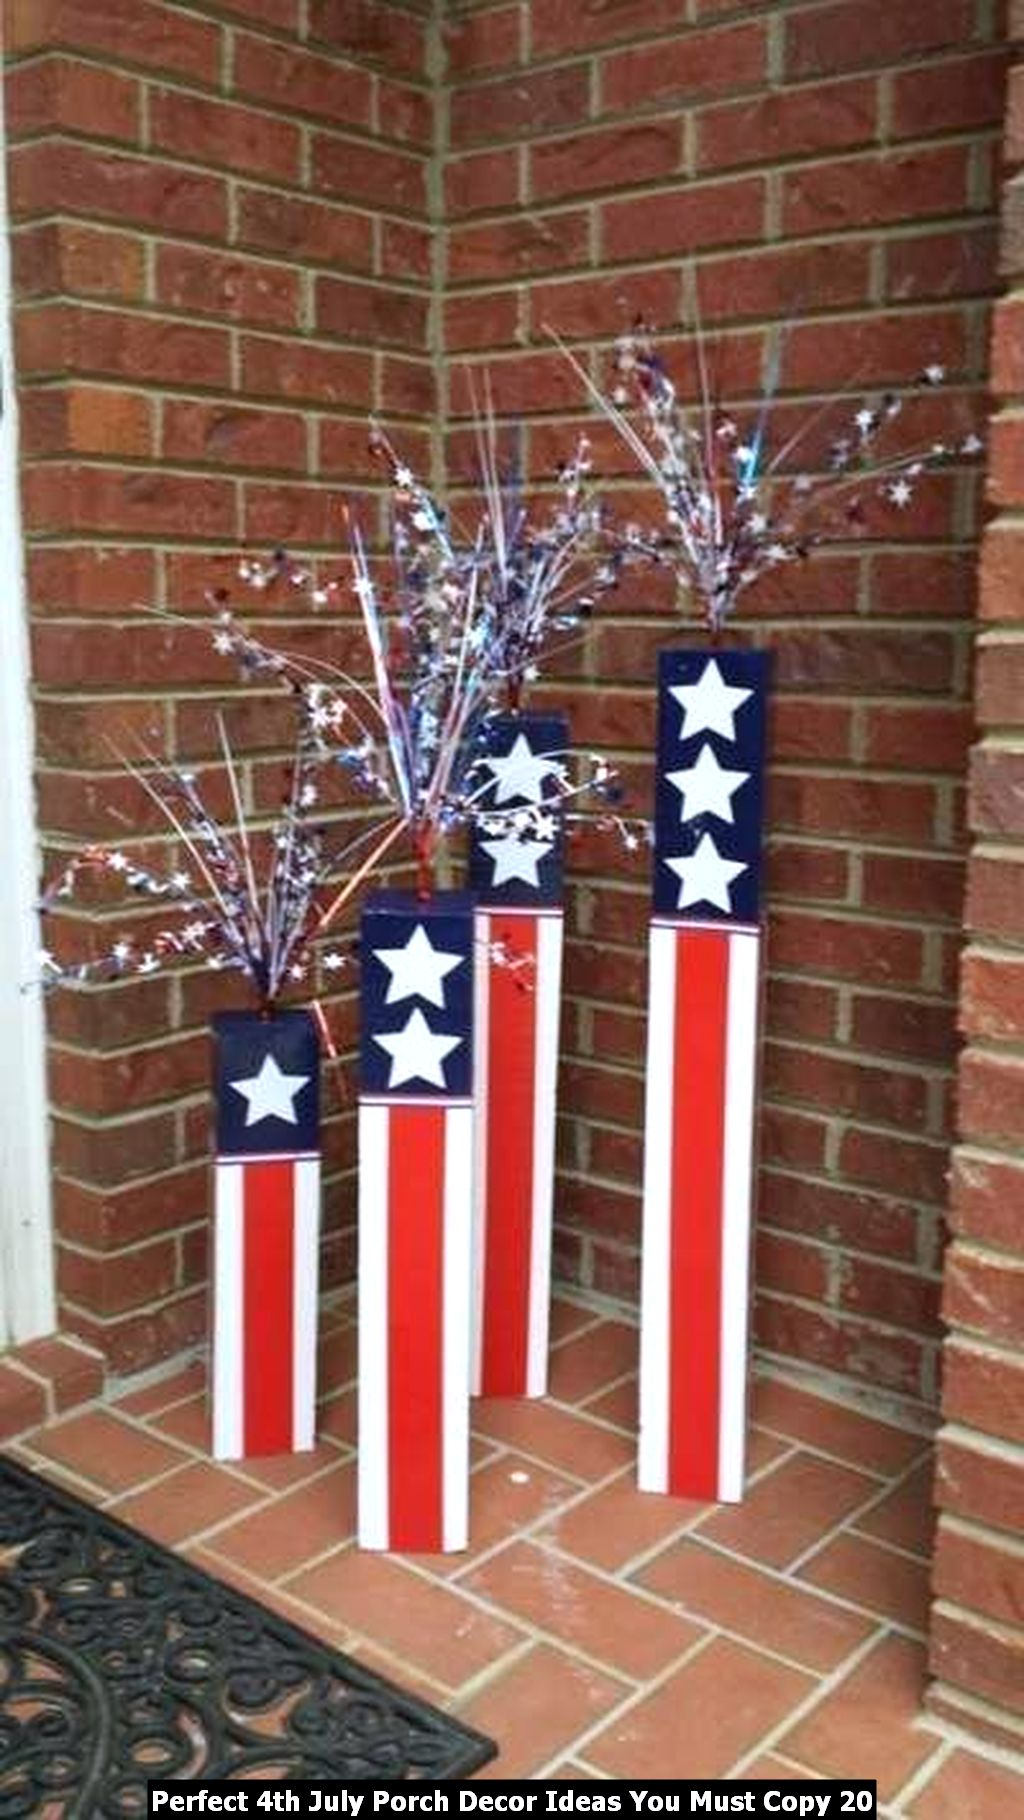 Perfect 4th July Porch Decor Ideas You Must Copy 20